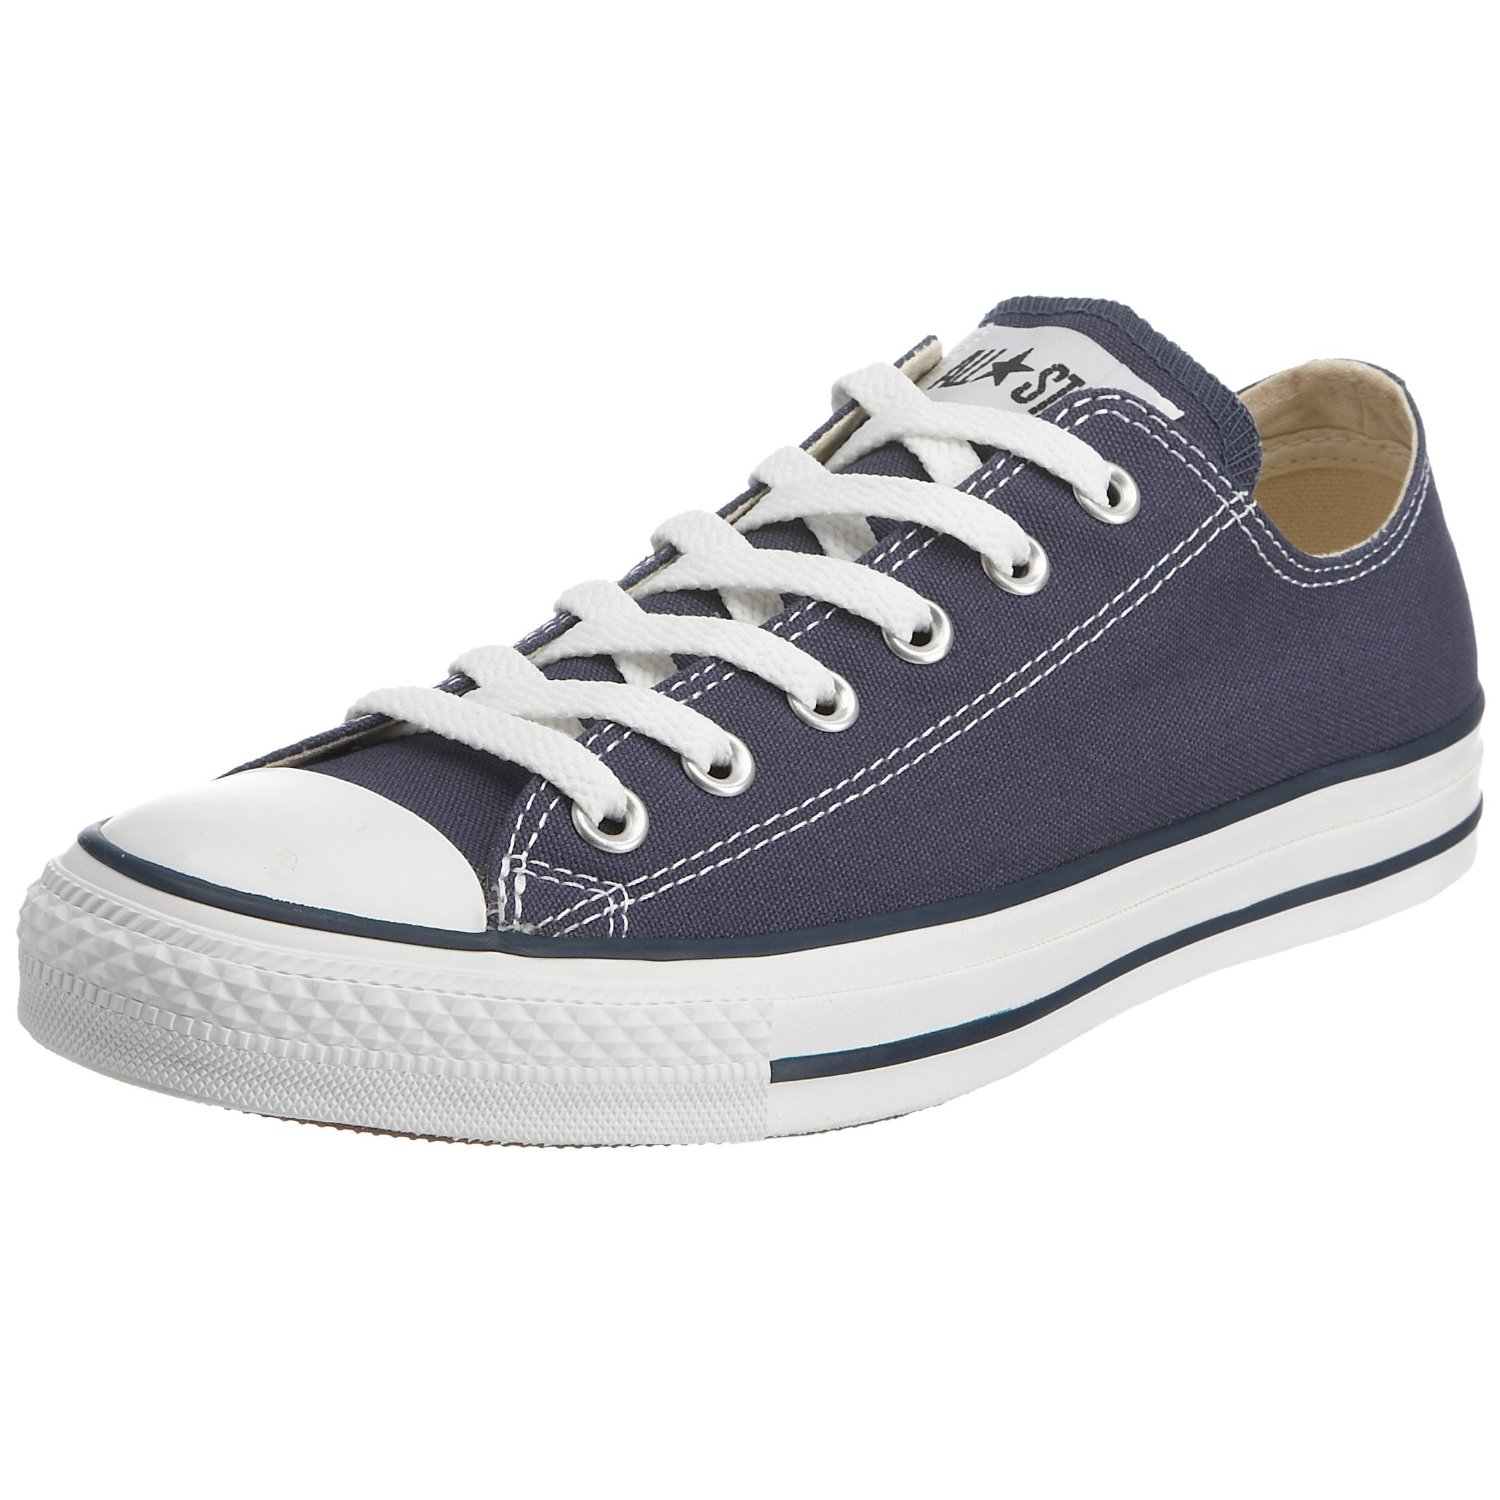 Navy Blue Converse All Star Shoes - Chuck Taylors Converse Canvas ... 1bdc8a2882